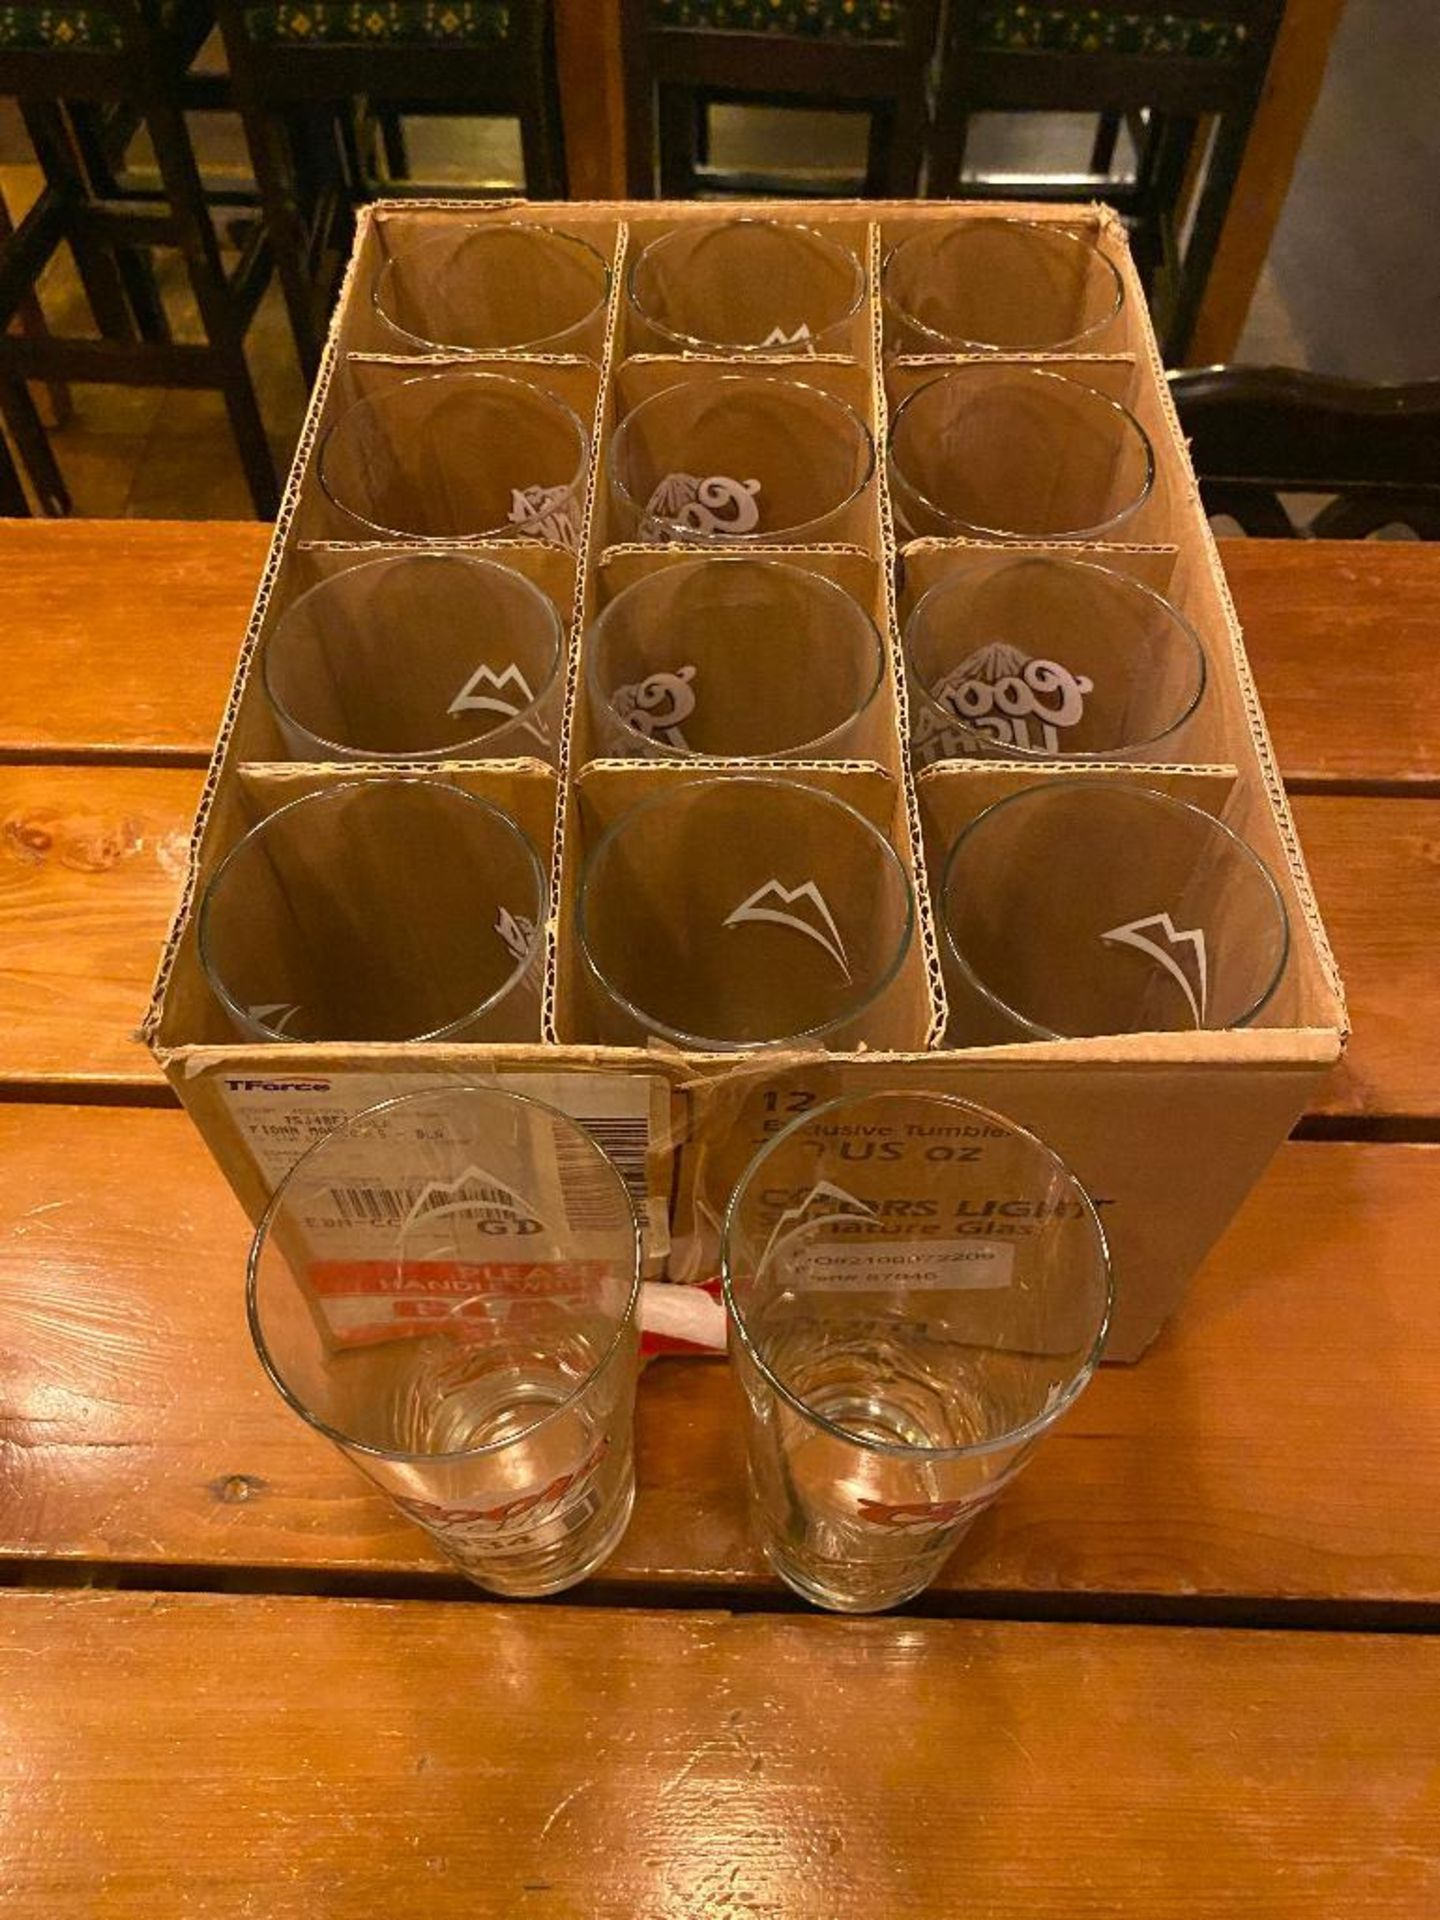 BOX OF COORS LIGHT BEER GLASSES